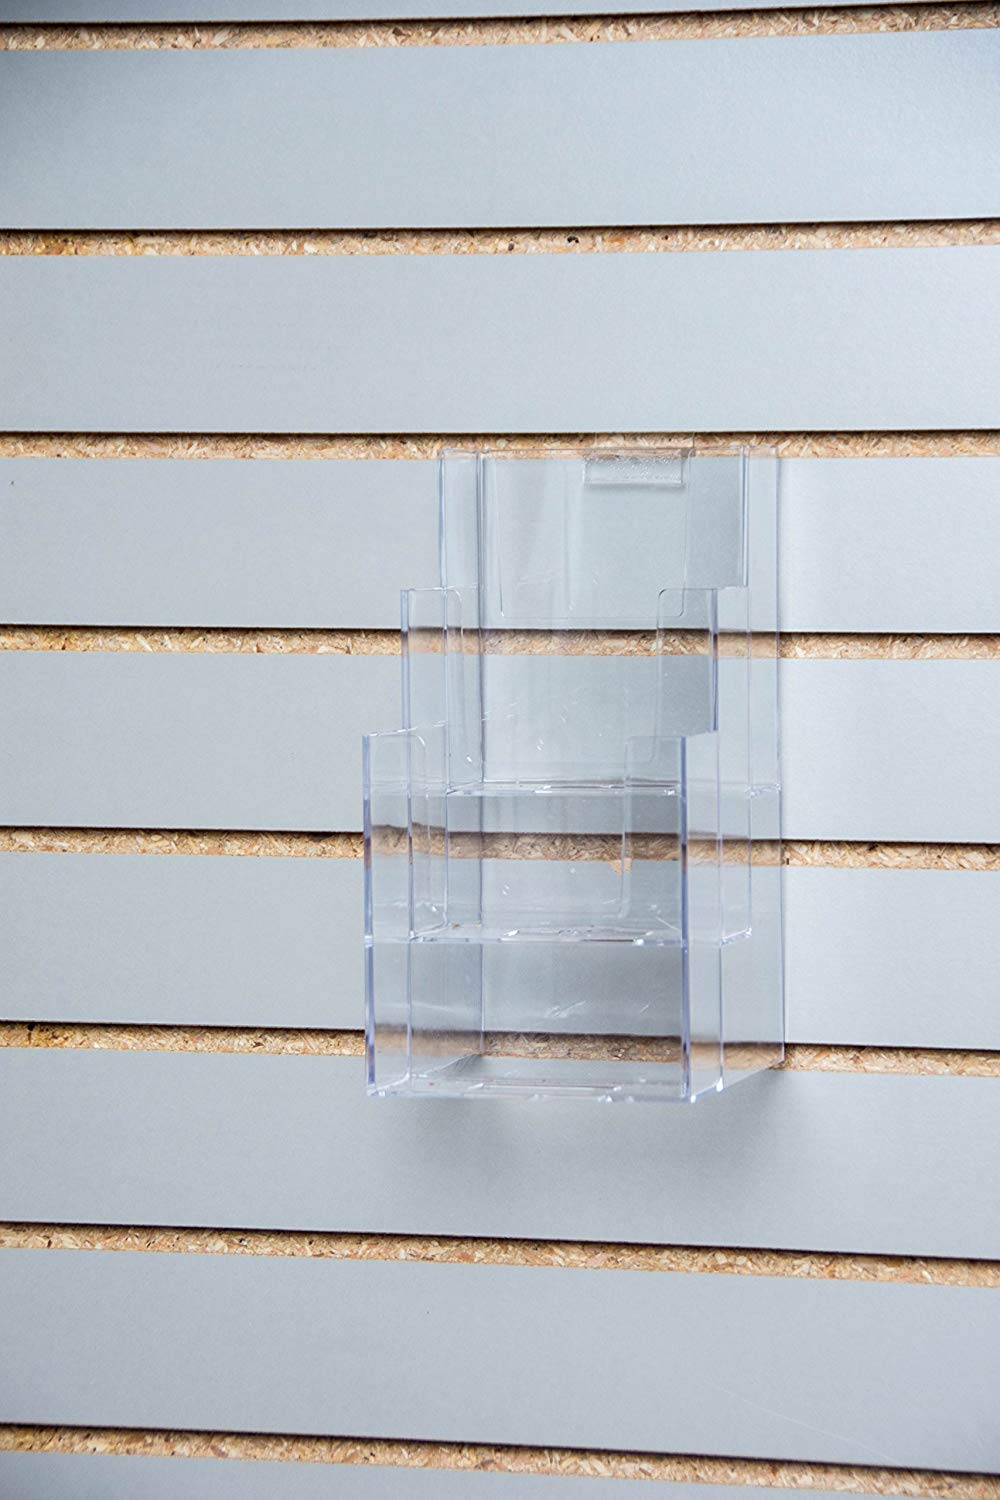 Clear-Ad - LHF-Z103 - Acrylic Upright 2 Tier Trifold Brochure Display with Z-bar for Slatwall - Plastic Literature Holder for Flyers, Booklets, Bills, Mail, Letters, Cards, Pamphlets, Maps (Pack of 2)